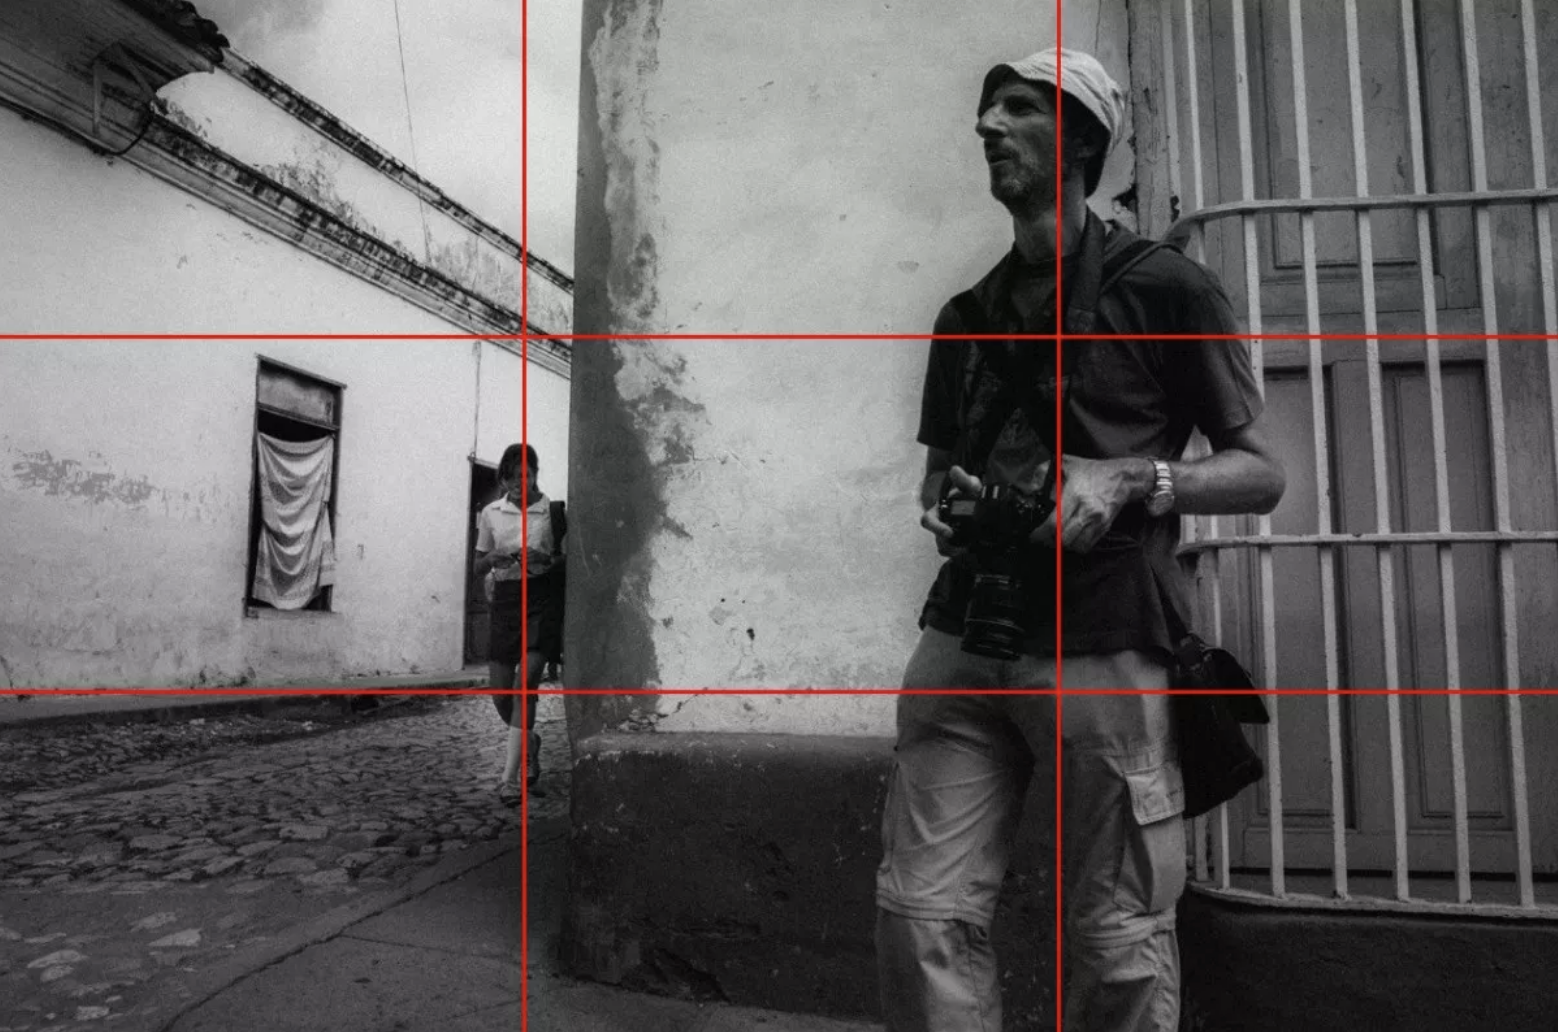 Rule of thirds method is about placing important objects or lines along or intersections of the rule of thirds grid.